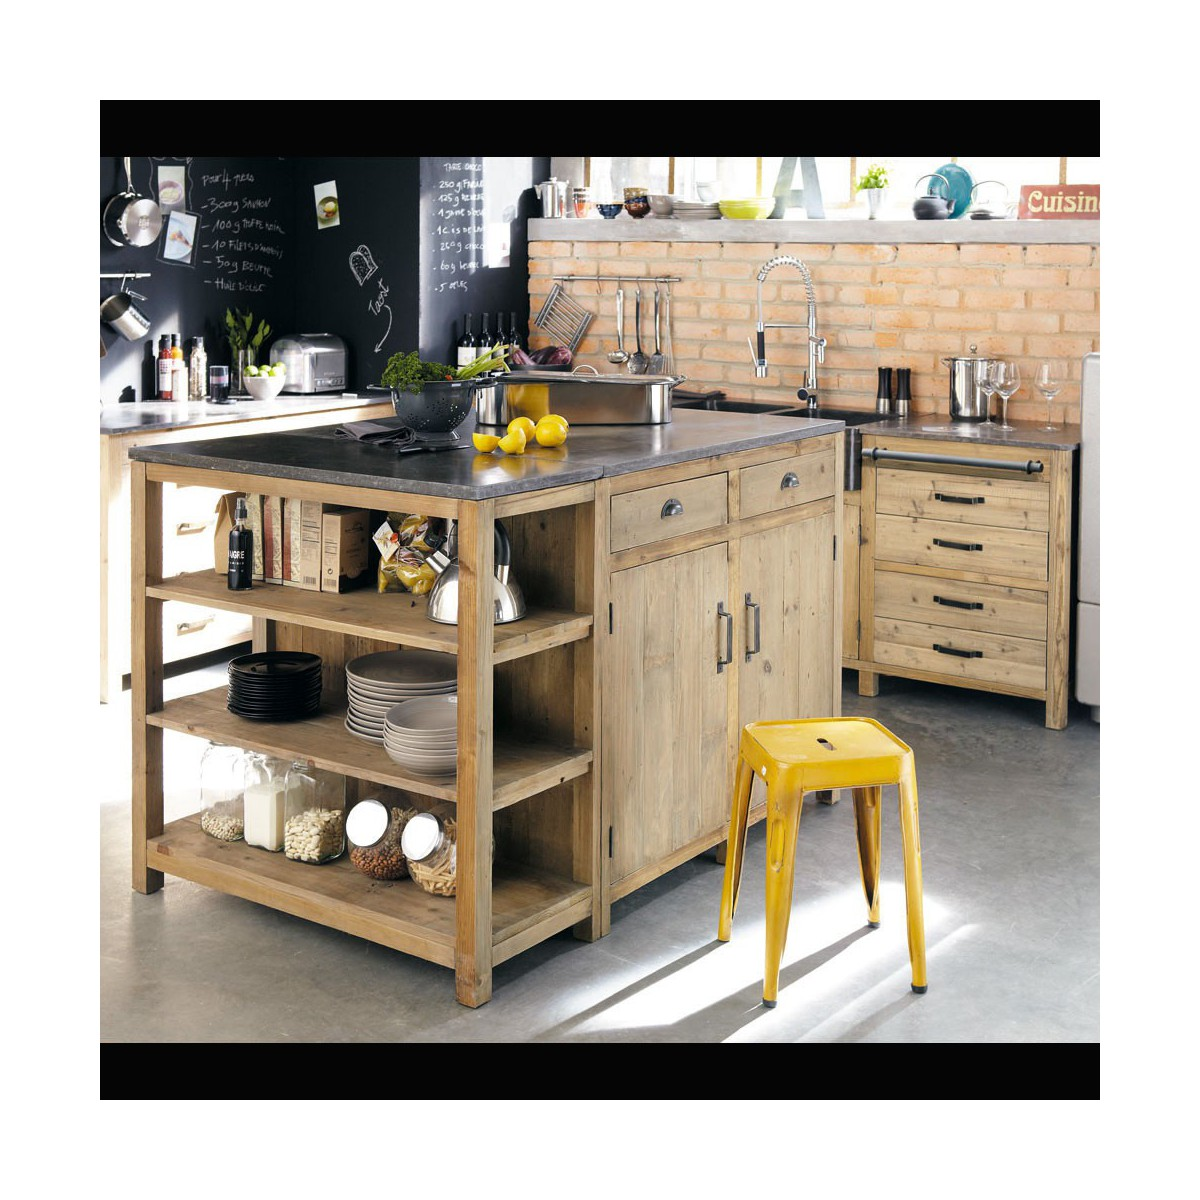 cuisine bois recycl id e int ressante pour la conception de meubles en bois qui inspire. Black Bedroom Furniture Sets. Home Design Ideas